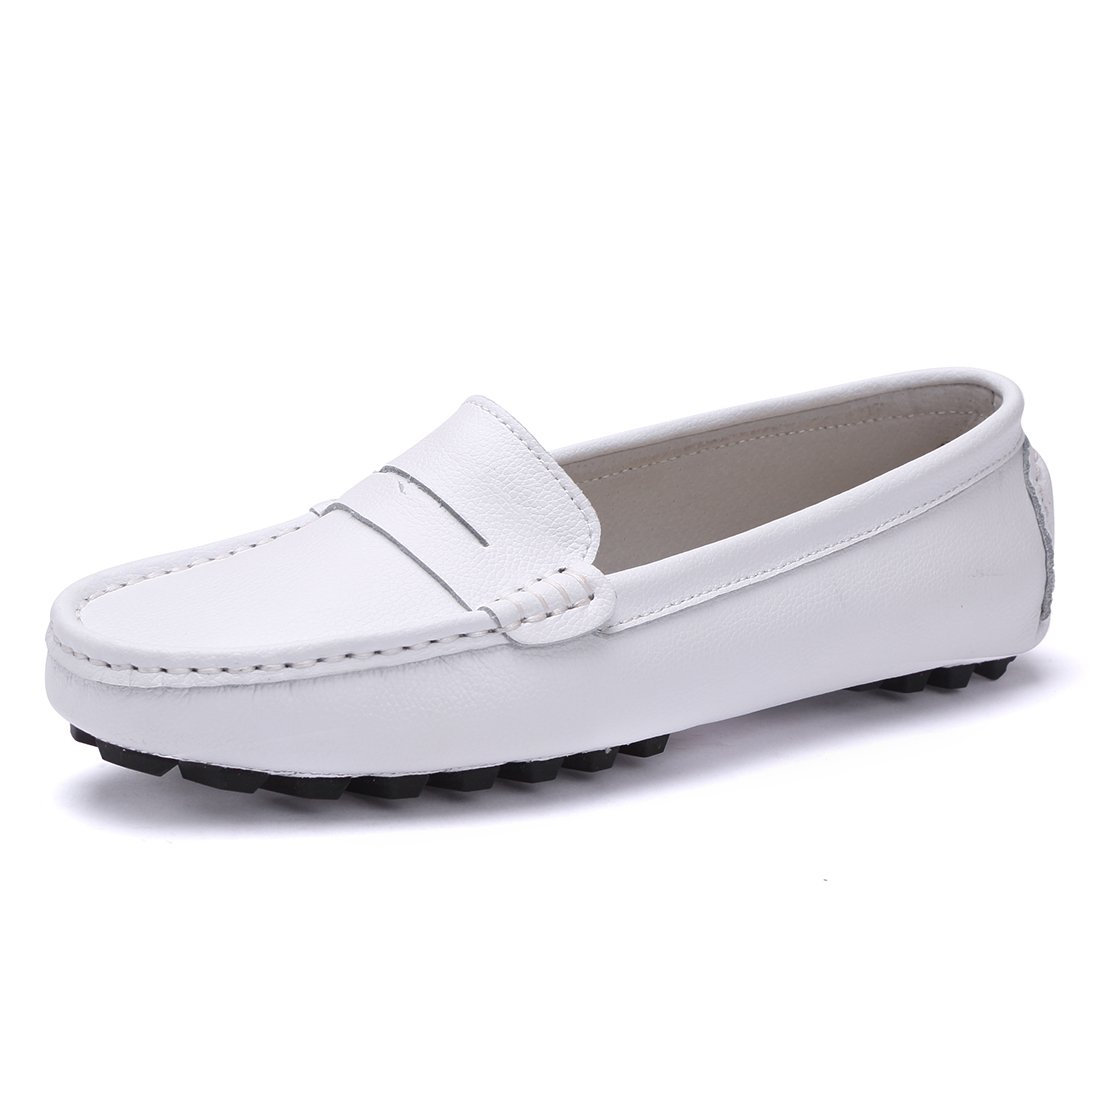 Ruiatoo Women's Classic Casual Leather Driving Moccasins Penny Loafers Fashion Slip On Shoes Office Comfort Flat Boat Shoes (US 8.5, White)